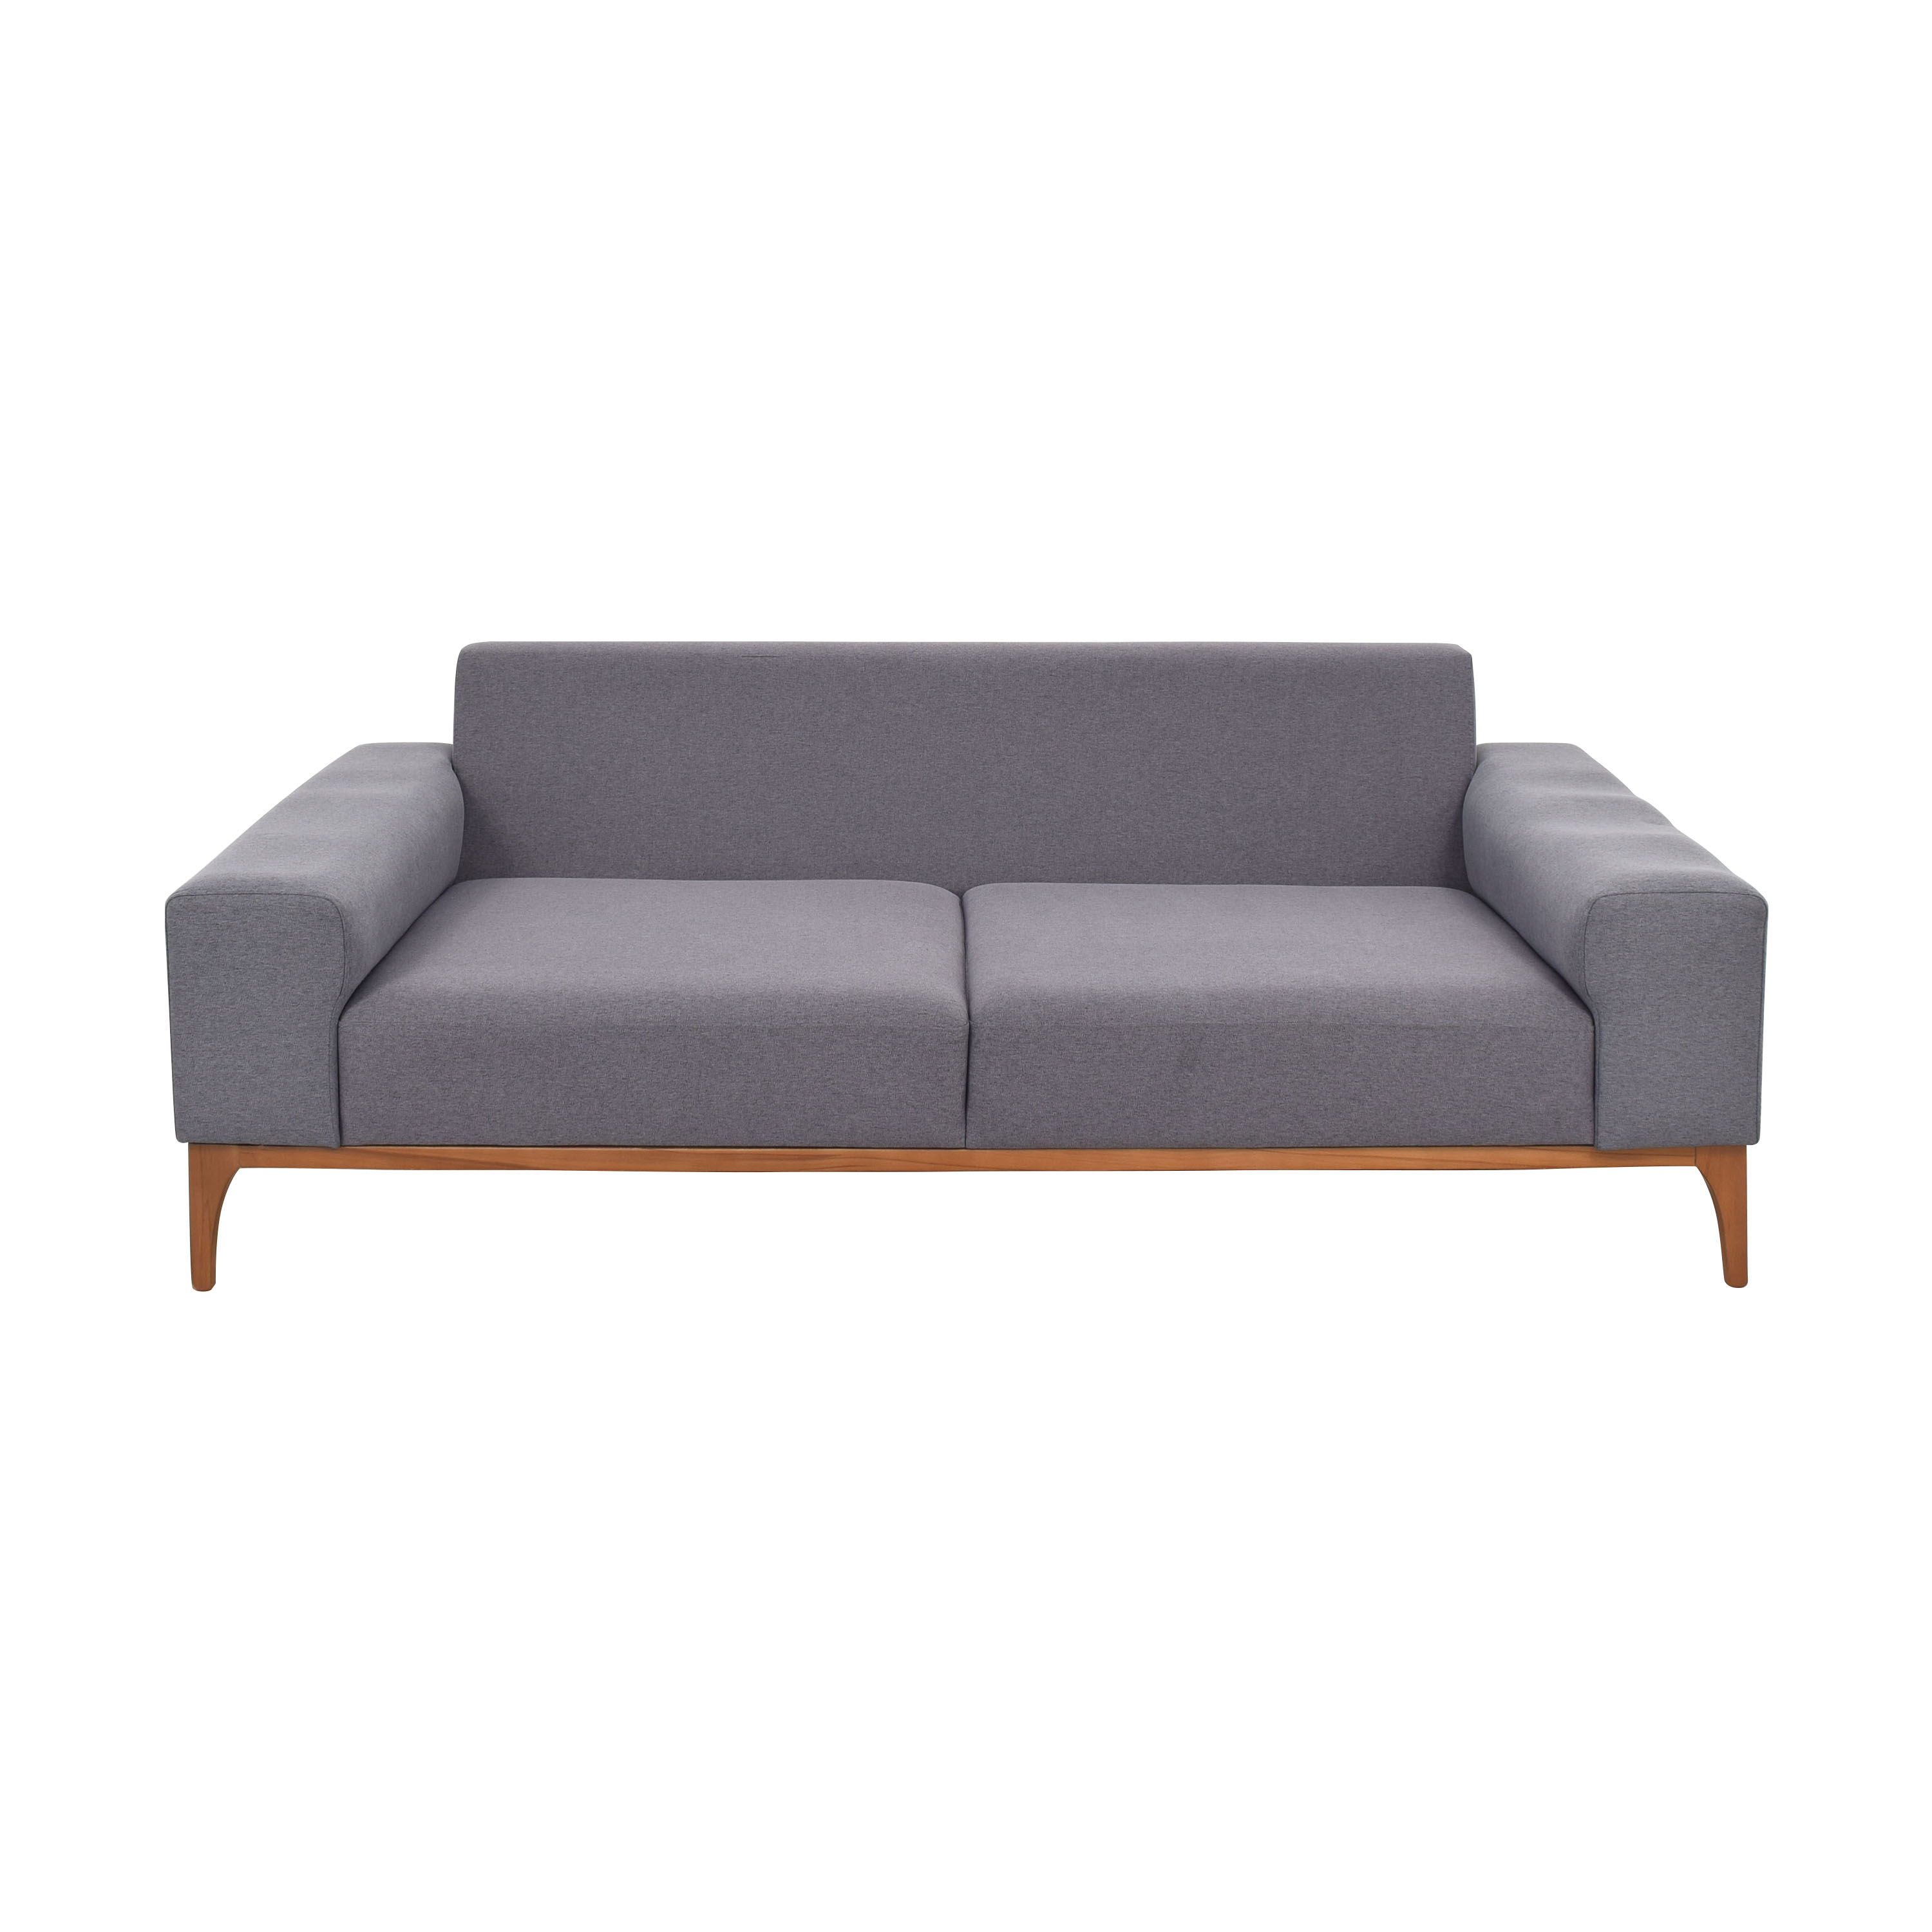 Modern Gray Sofa with Wooden Legs ma